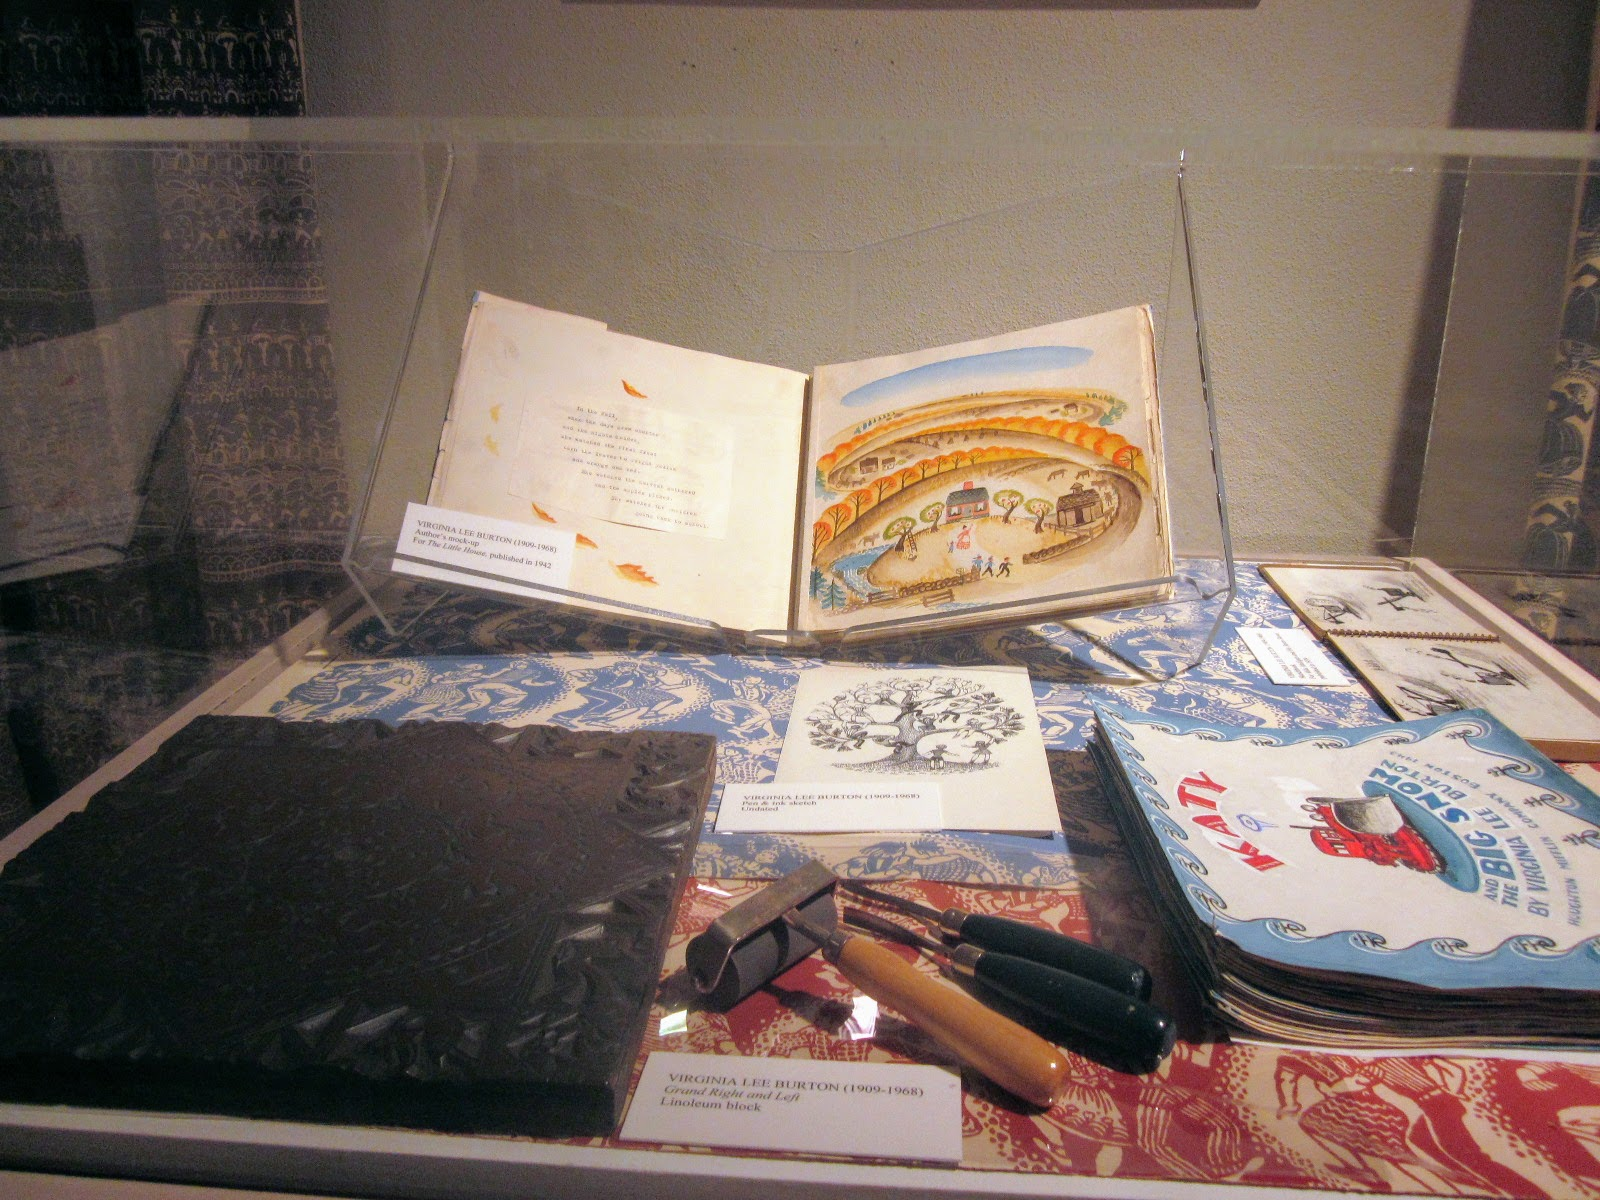 Virginia Lee Burton display at CAM 2011